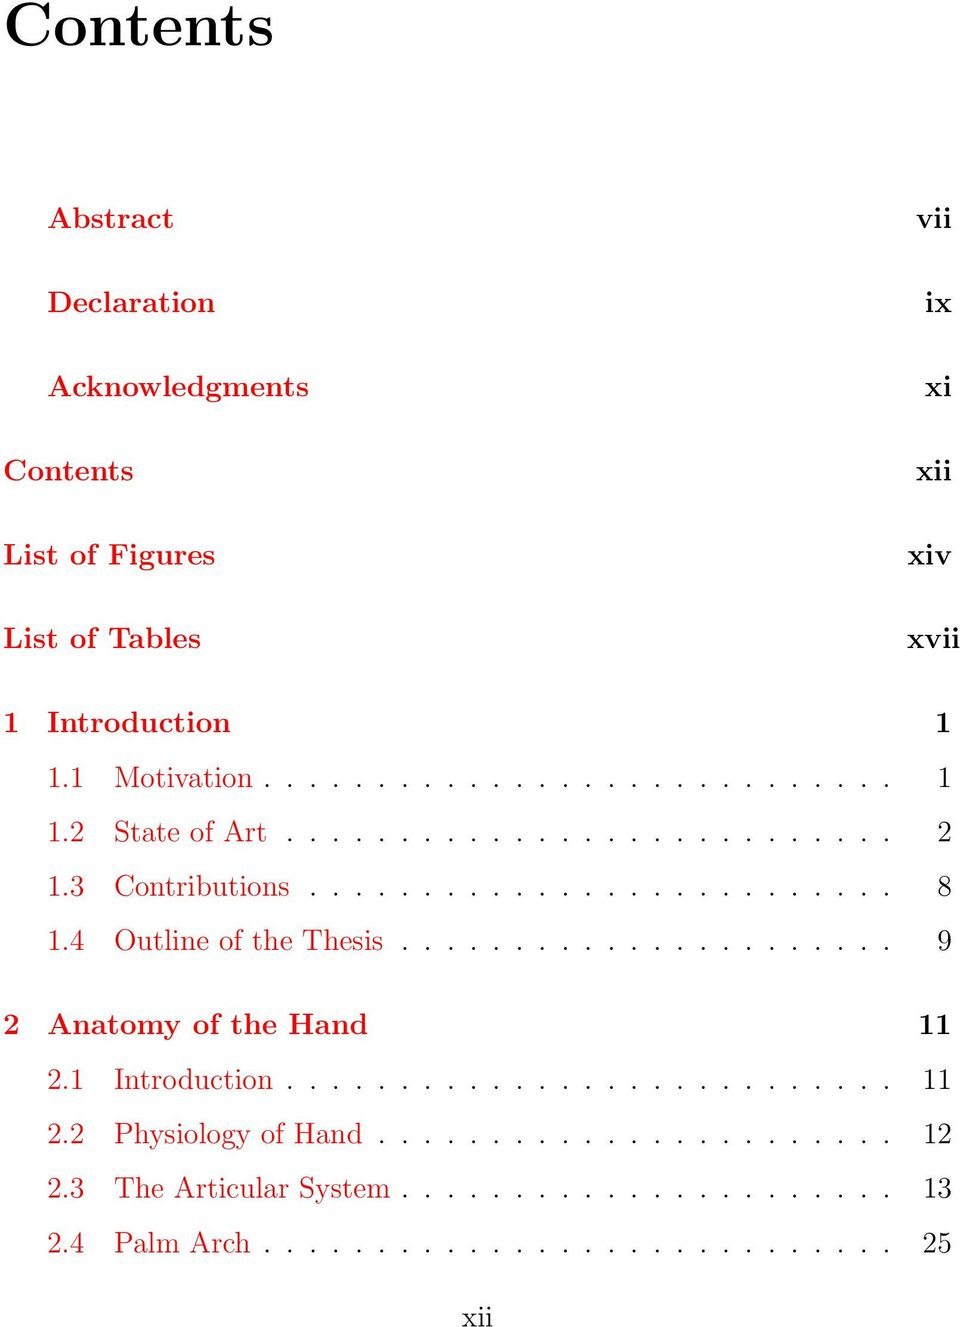 4 Outline of the Thesis...................... 9 2 Anatomy of the Hand 11 2.1 Introduction........................... 11 2.2 Physiology of Hand.